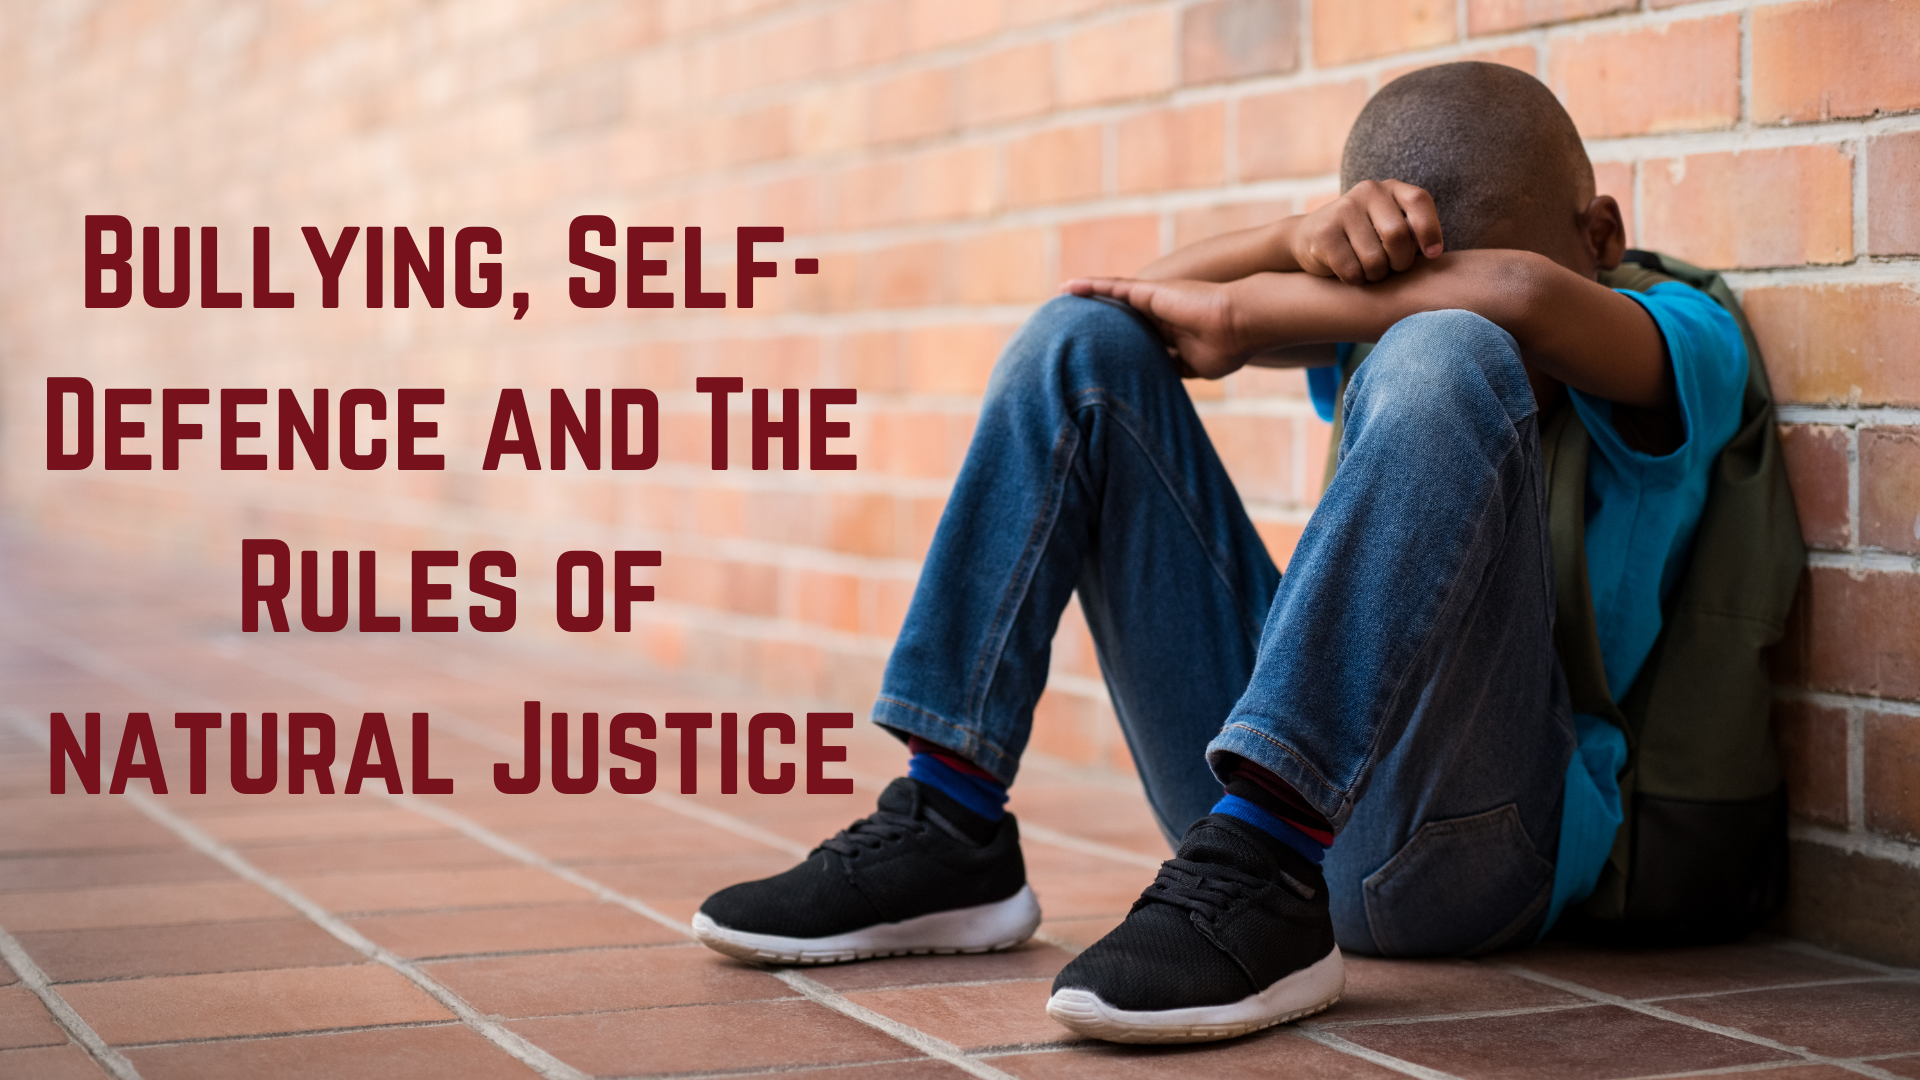 Bullying, Self-Defence and The Rules of Natural Justice